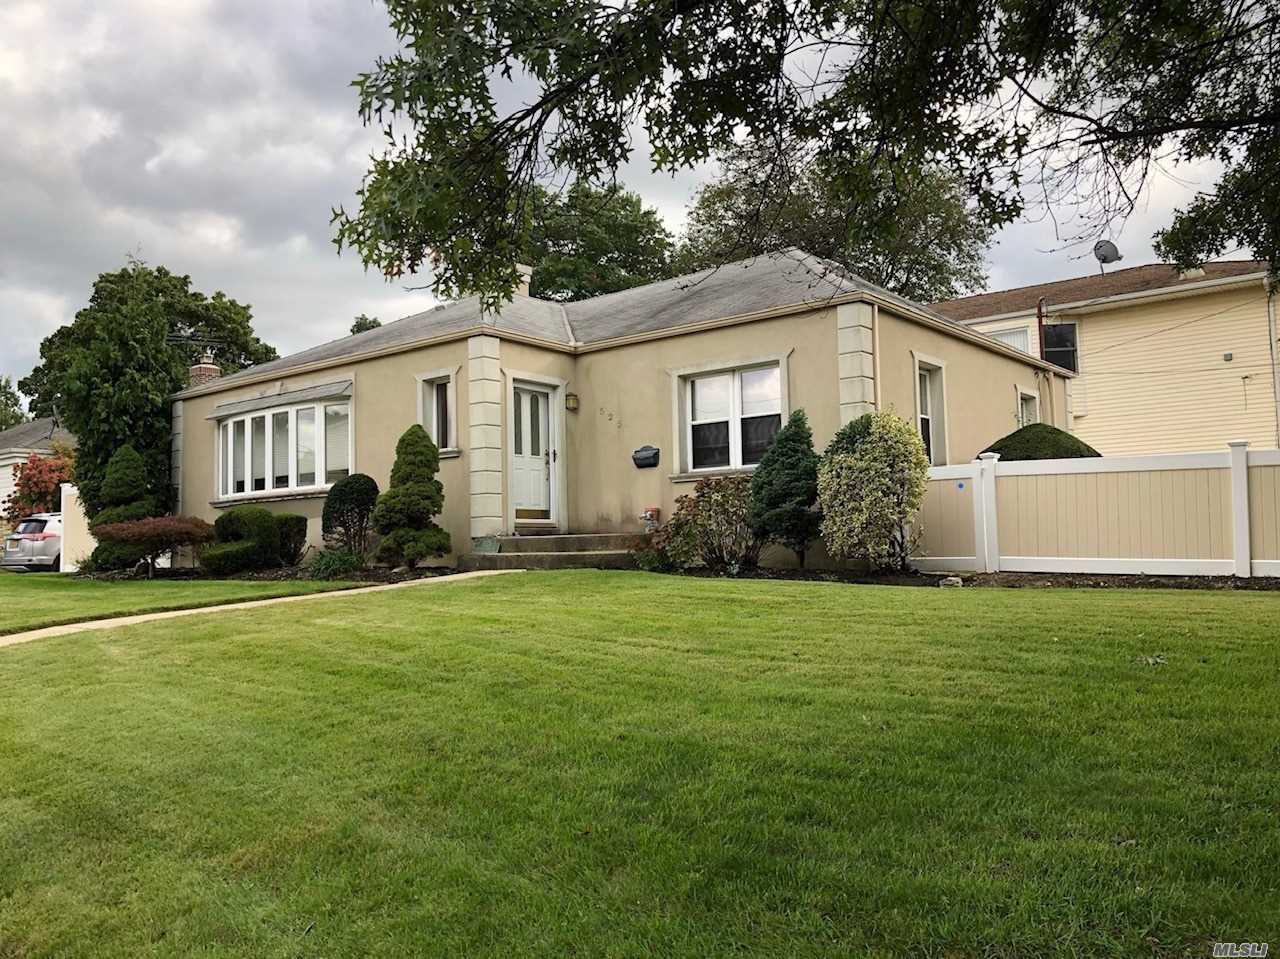 Well Kept Home Featuring: Cac; Oversized Eat-In-Kitchen With Wood Cabinetry, Granite Counter Tops, Stainless Steel Appliances; Large Living Room With A Wood Burning Fireplace; Hardwood Floors; Vinyl Fencing, Patio With Pavers, Very Large Unfinished Basement. Close To Lirr, Hwys, Shops